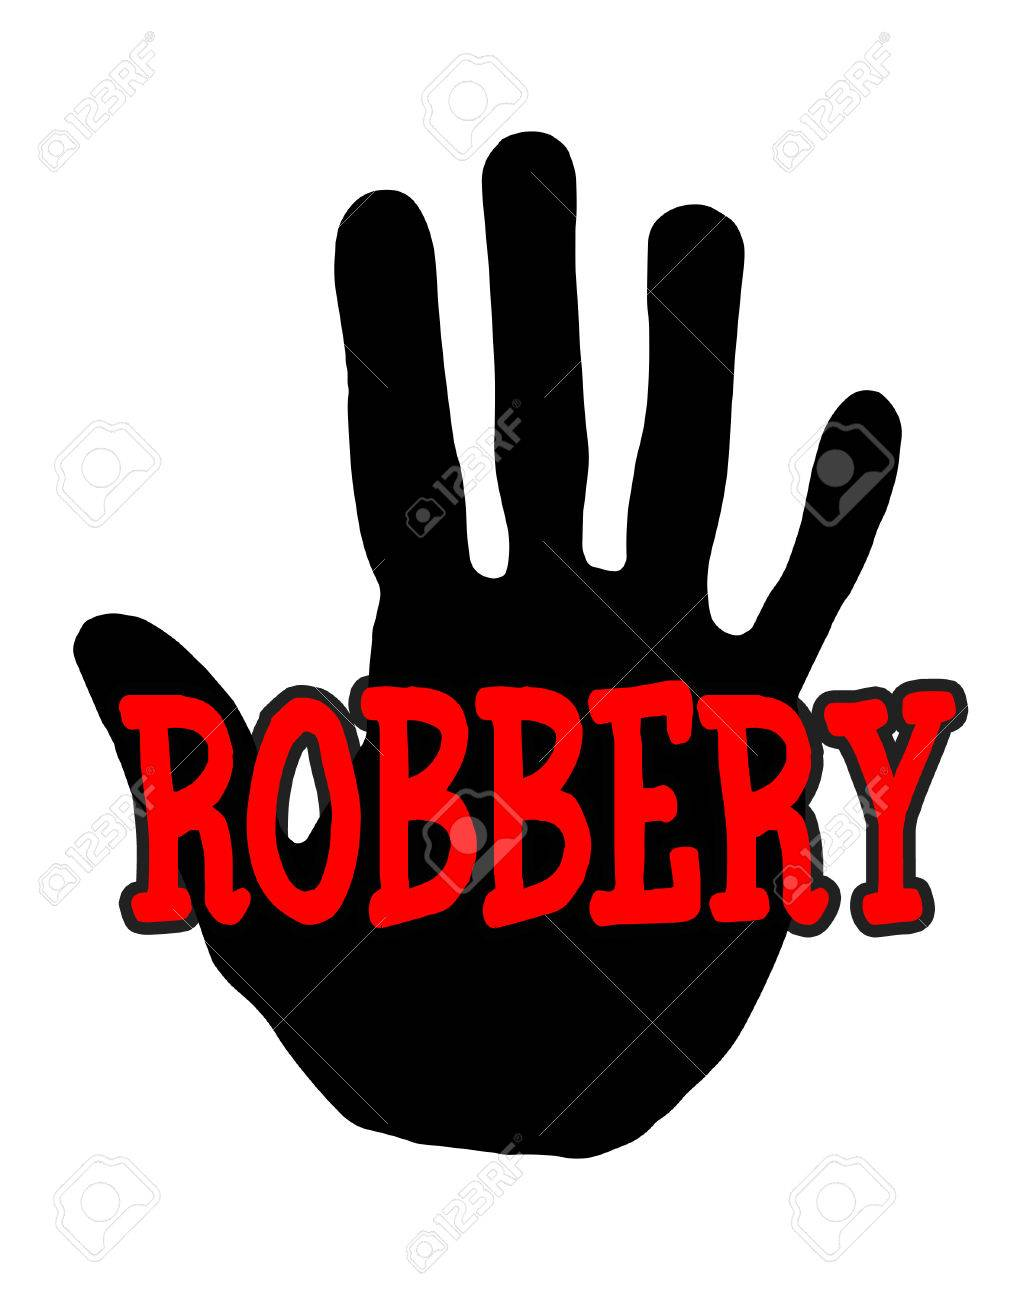 The difference between theft from robbery is the use of fear or force